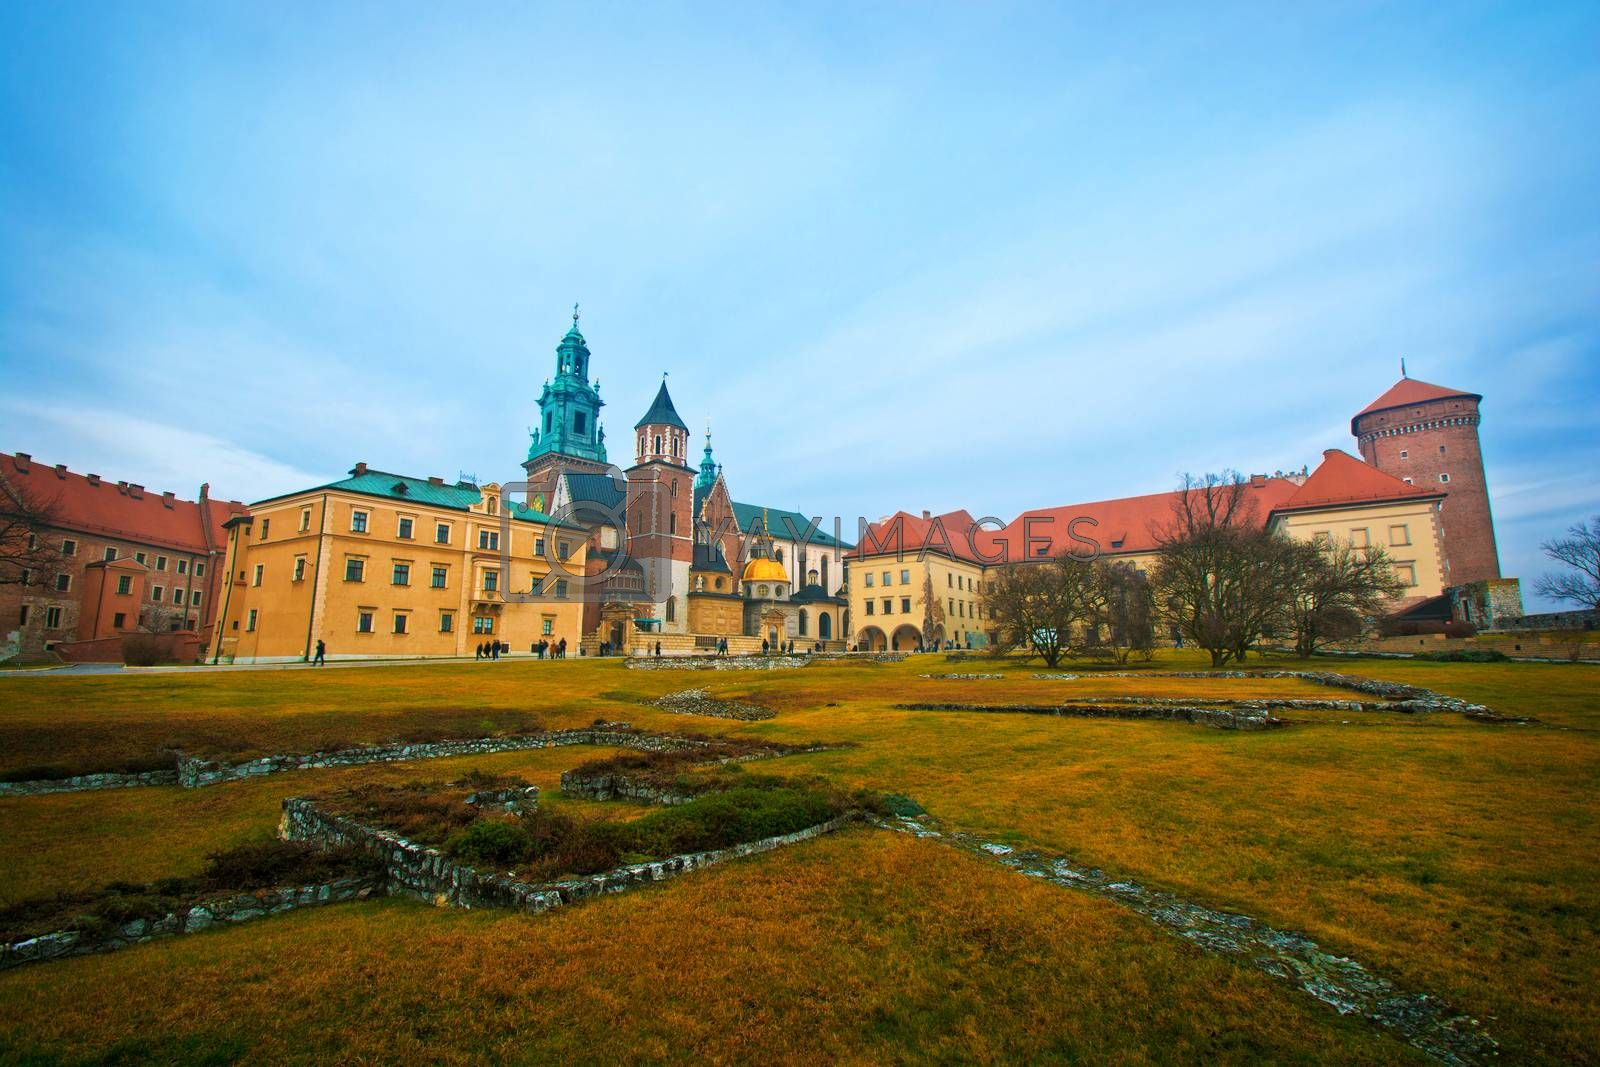 View of Wawel Castle in Cracow, Poland.